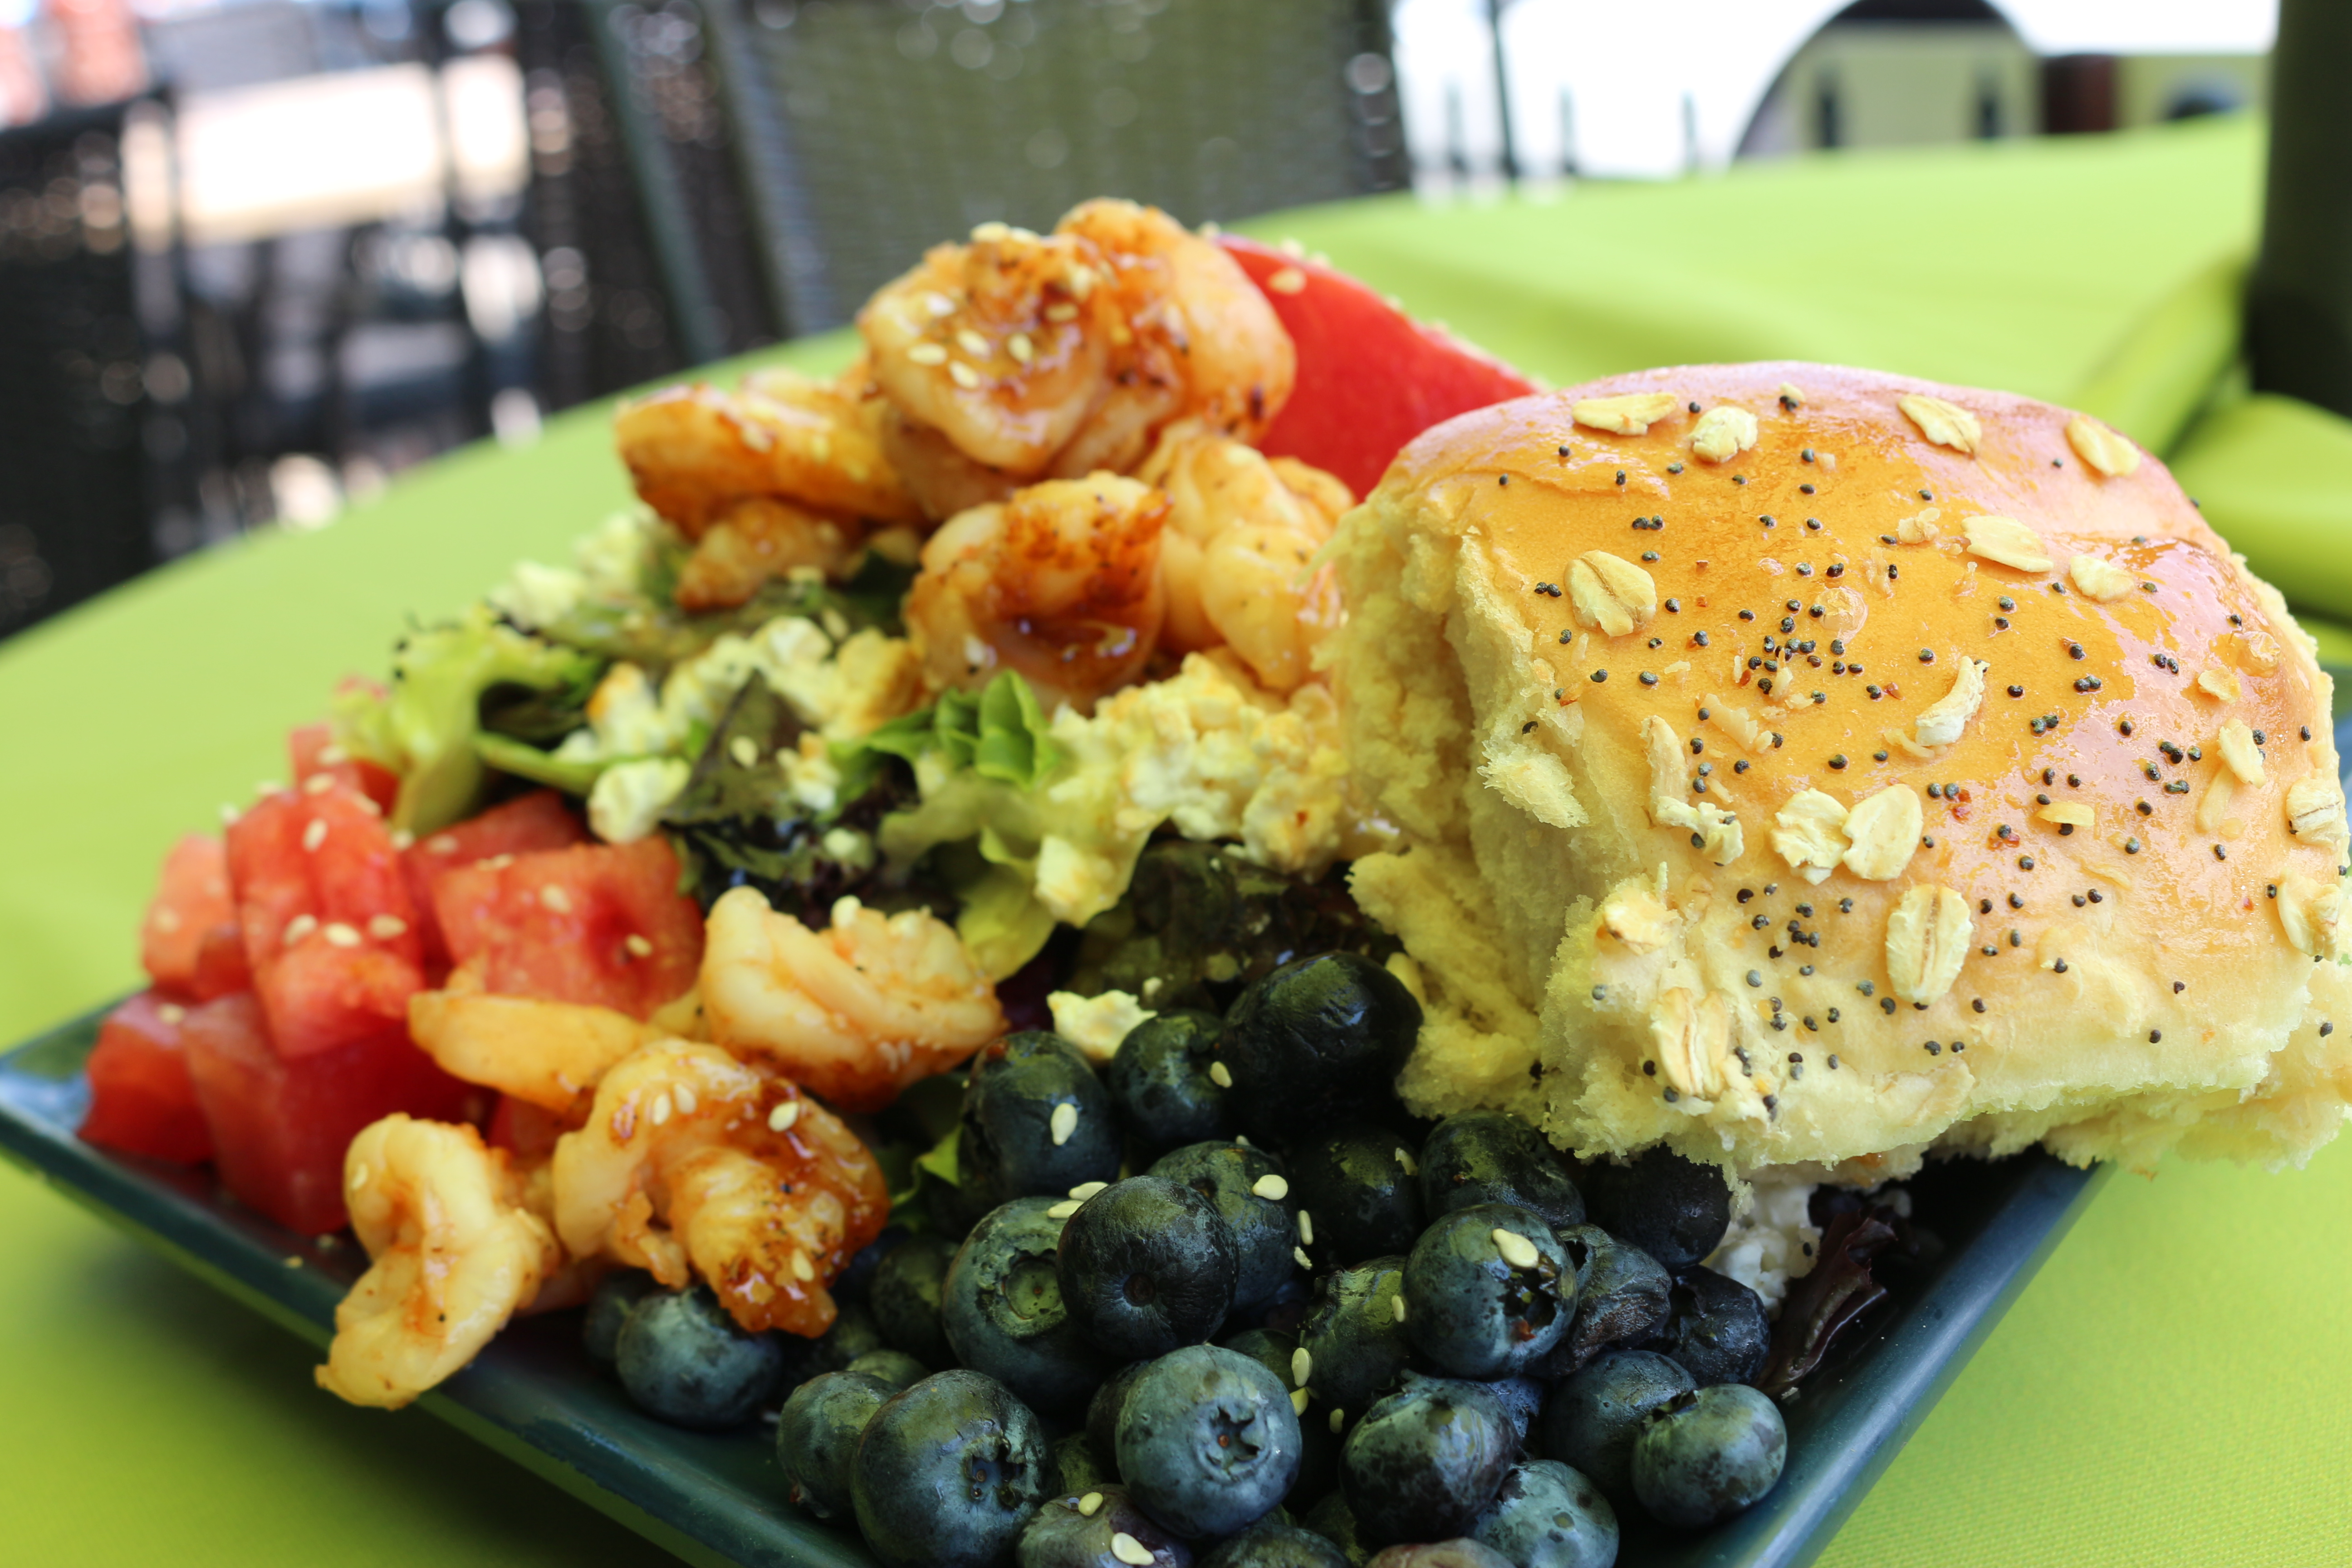 Cyn Shea's Cafe & Catering